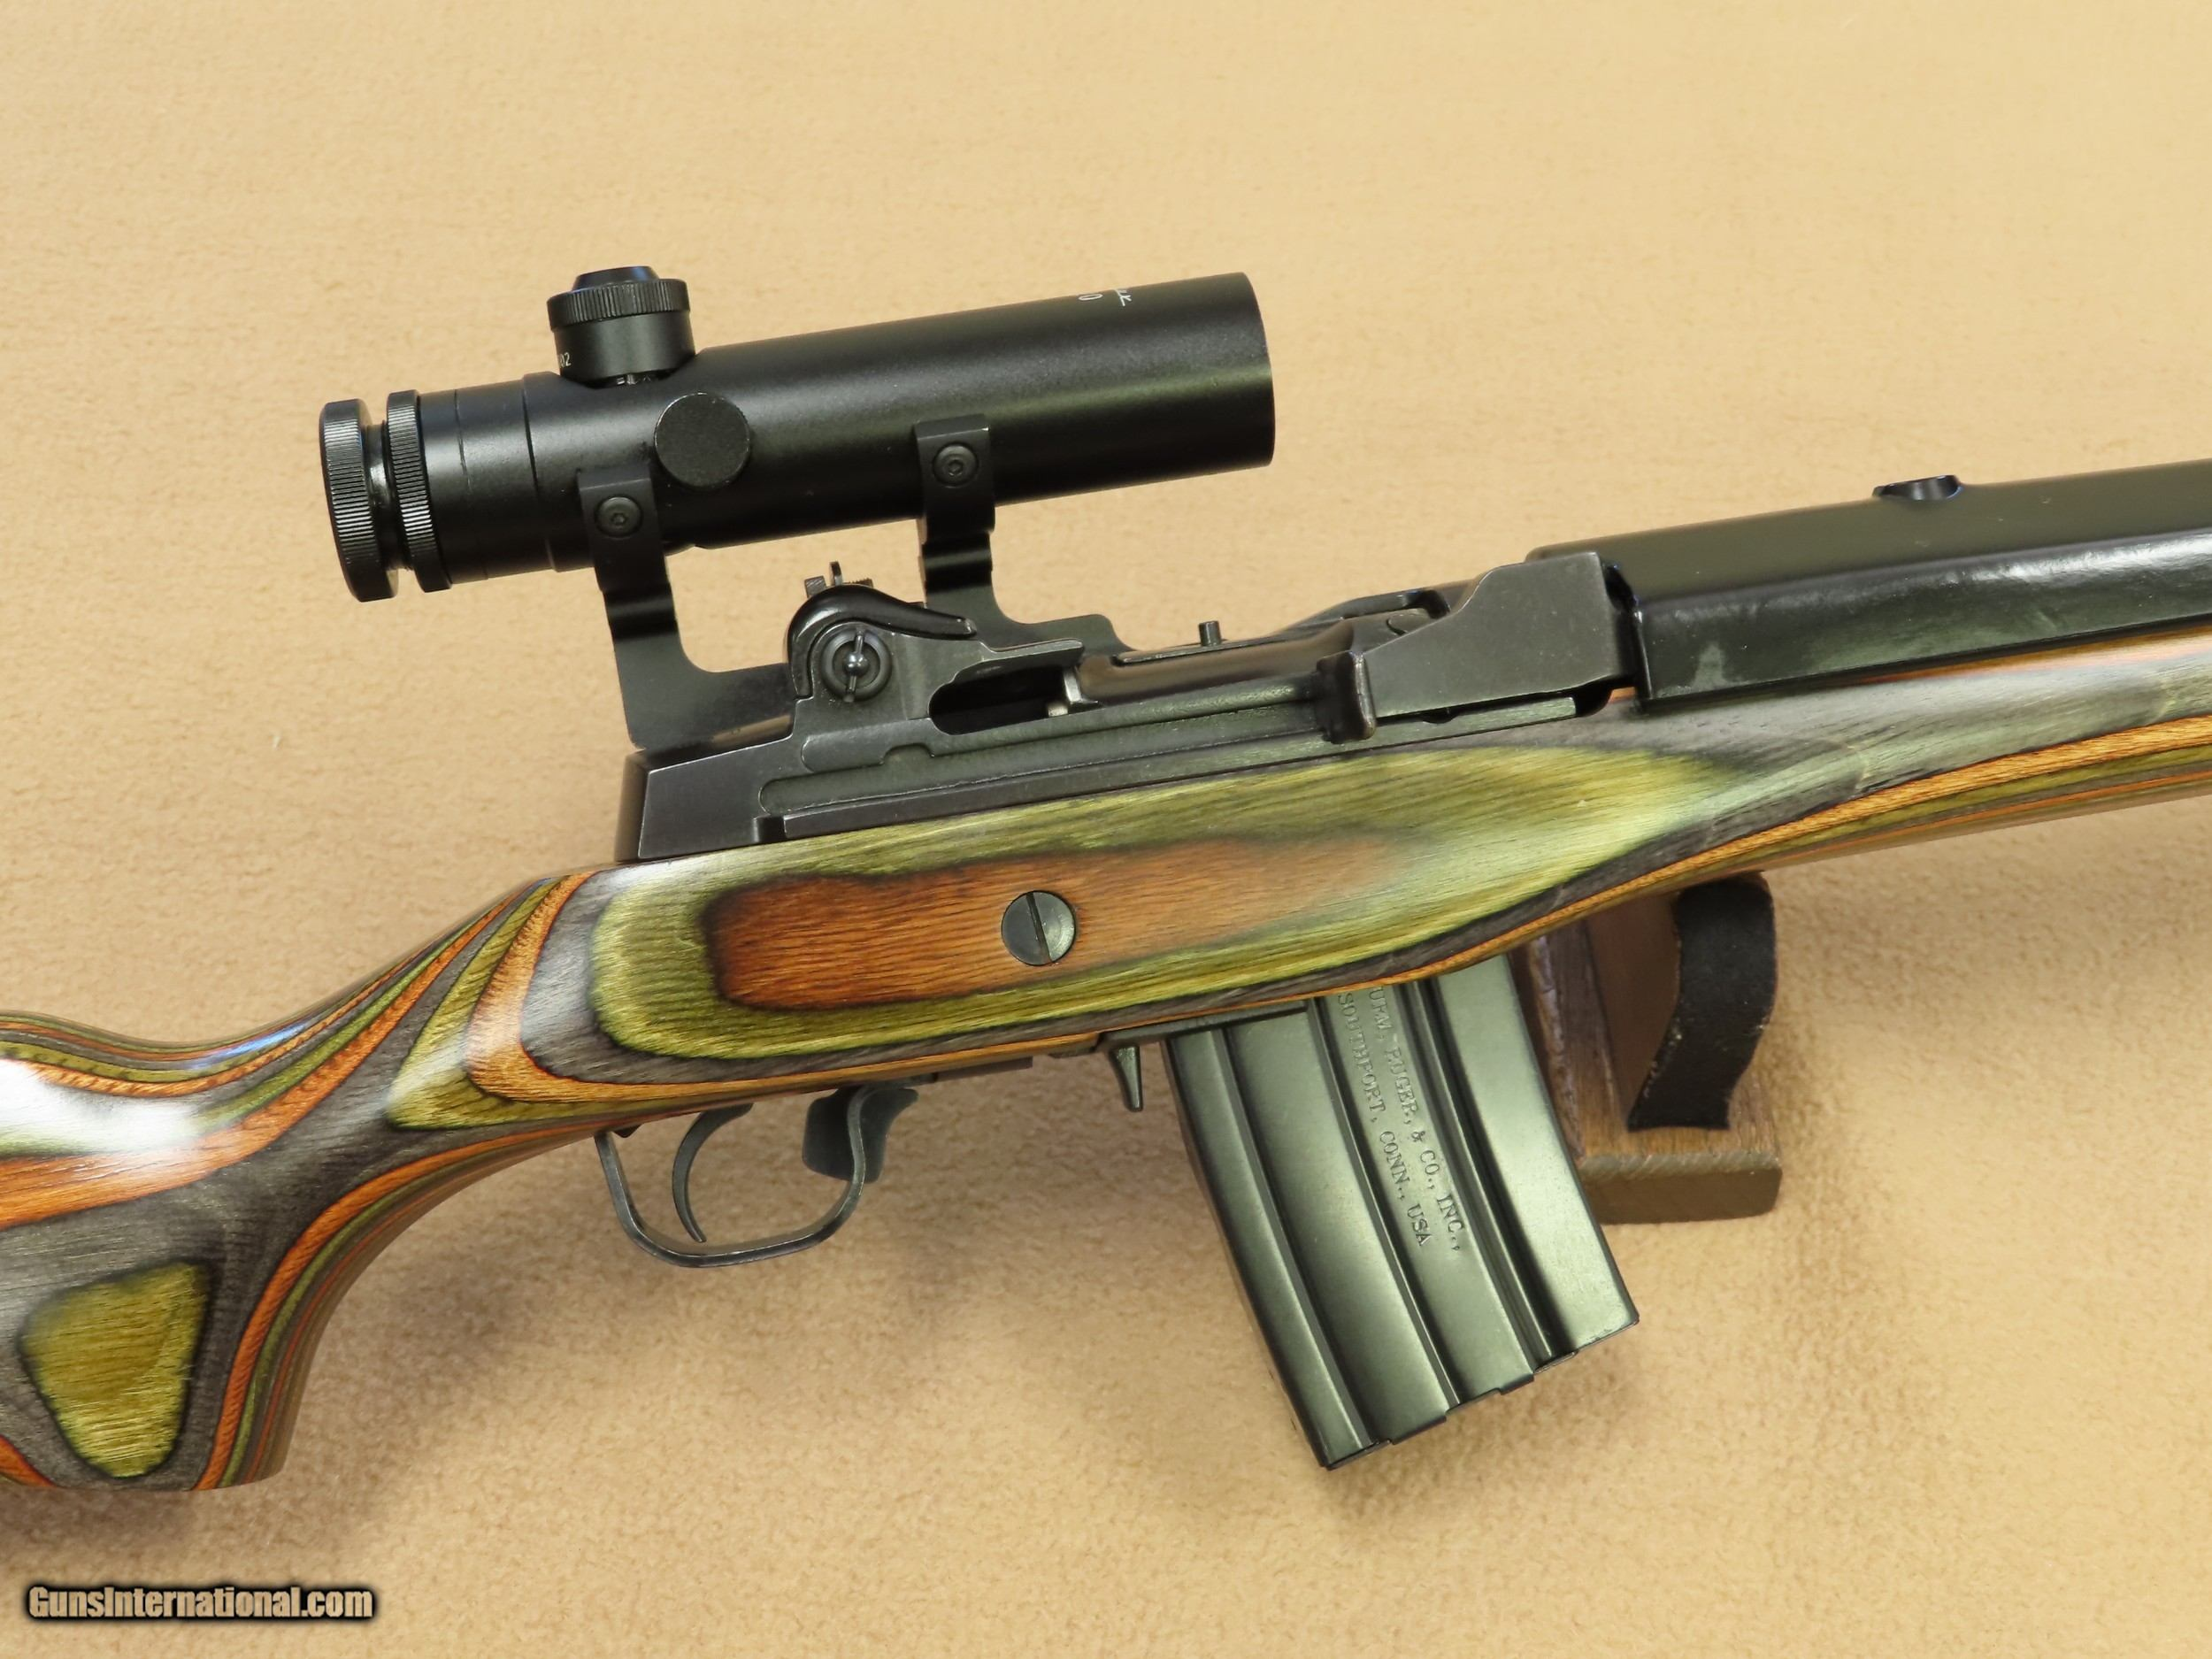 1987 Vintage Ruger Mini-14 w/ Factory Laminate Stock and